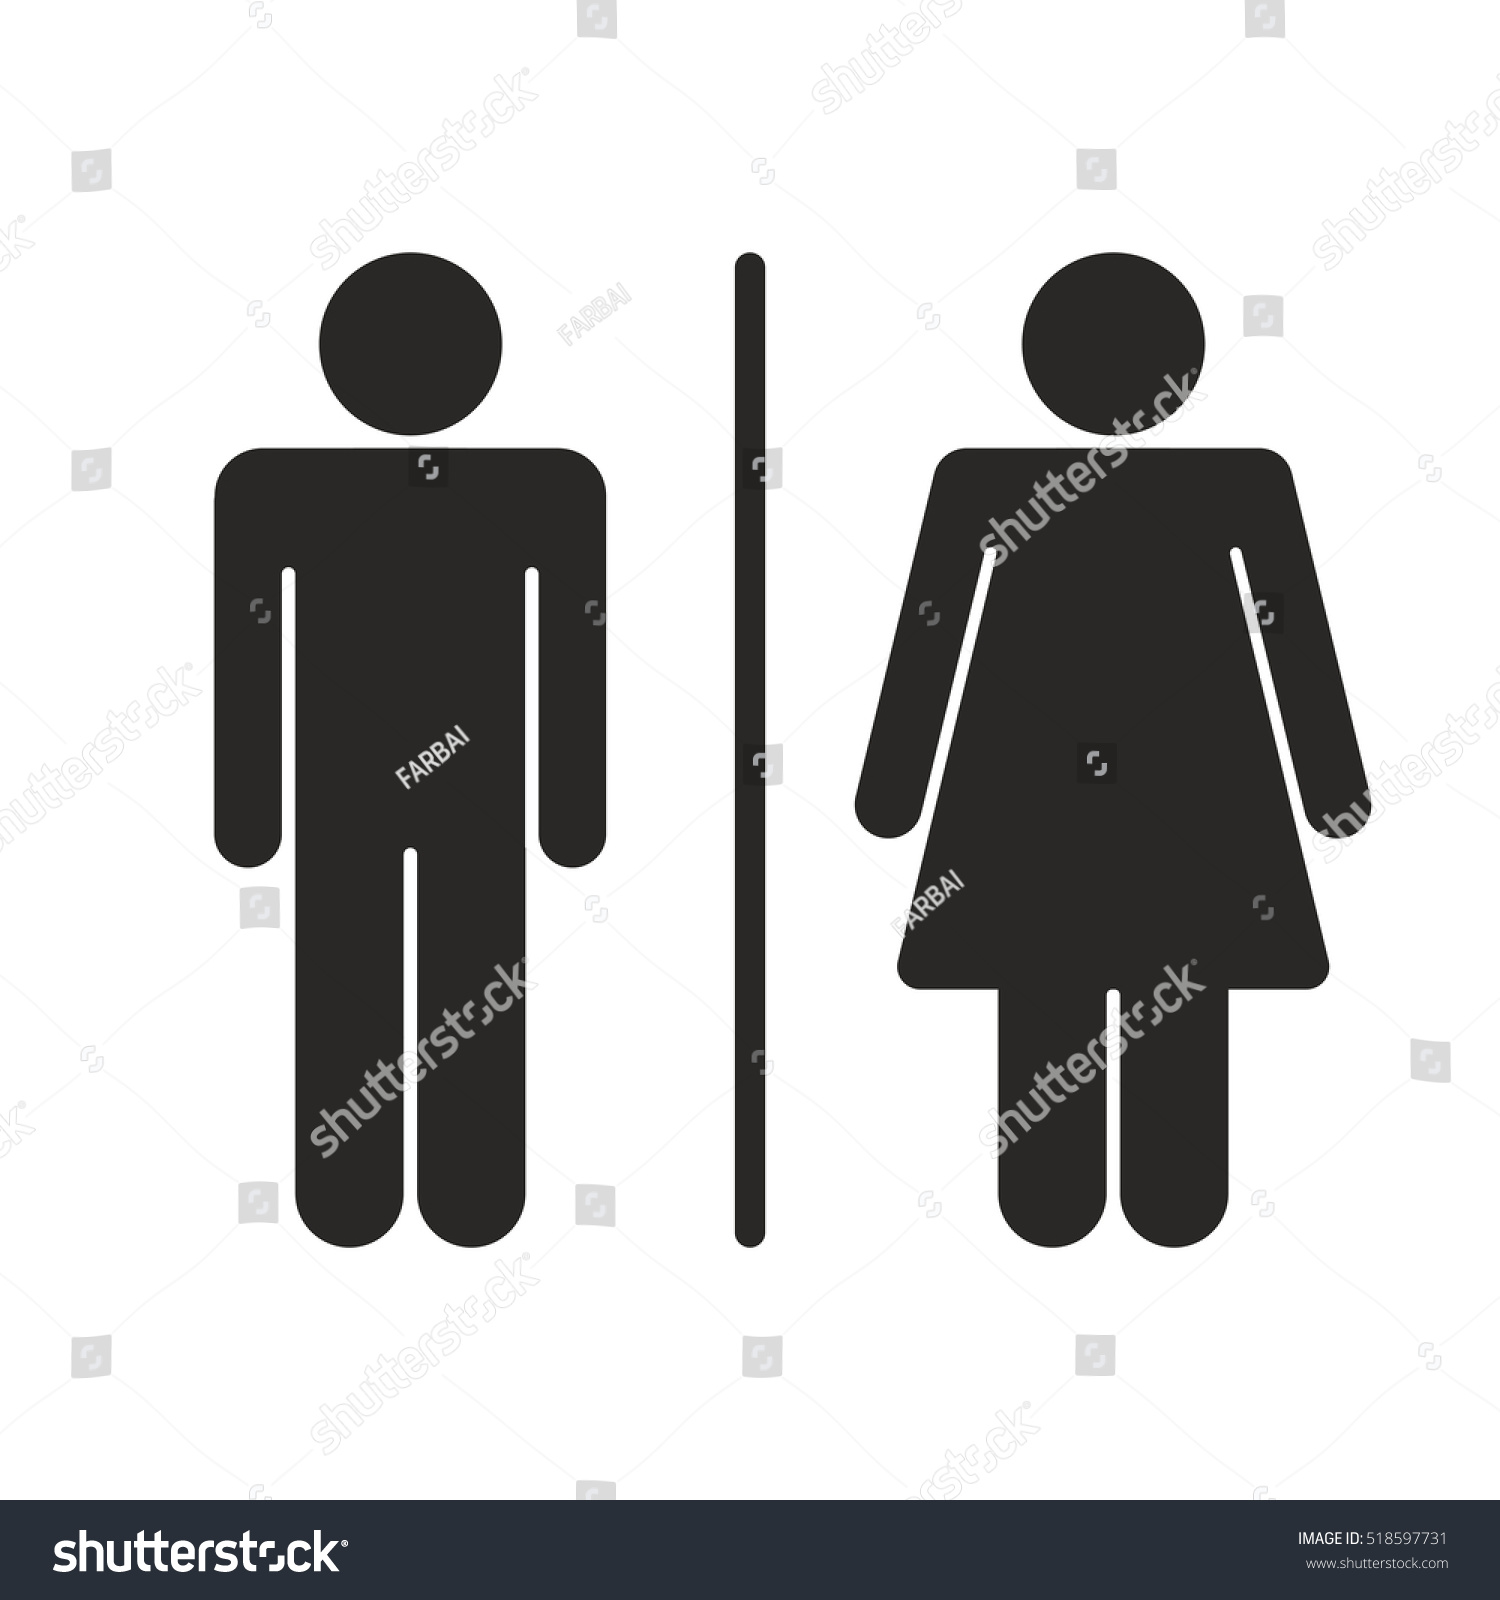 Toilet sign men women vector stock vector 518597731 shutterstock toilet sign men and women vector biocorpaavc Choice Image